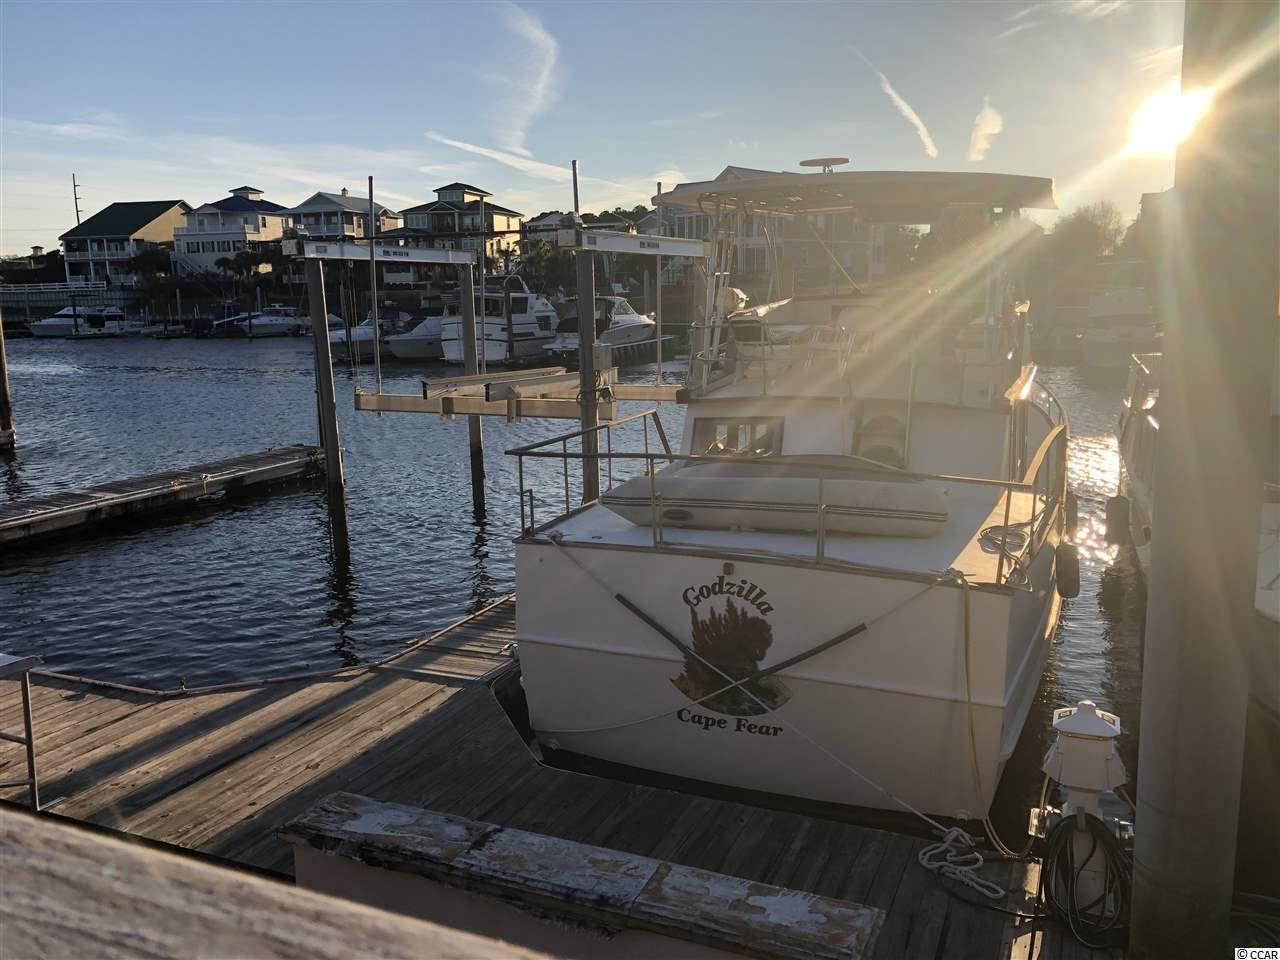 Great opportunity for a 40 ft. boat slip in the beautiful Dock Holidays Marina. The Marina is located directly on the Intracoastal Waterway at 13th Ave. North by Boardwalk Billy's restaurant, easy access to the ocean from the Little River Inlet and 1 mile away from the Cherry Grove Swing Bridge.  Owners are able to live aboard for an extra fee.  Low monthly HOA fee includes basic cable, water/sewer, trash and common dock maintenance. Awesome views!!!